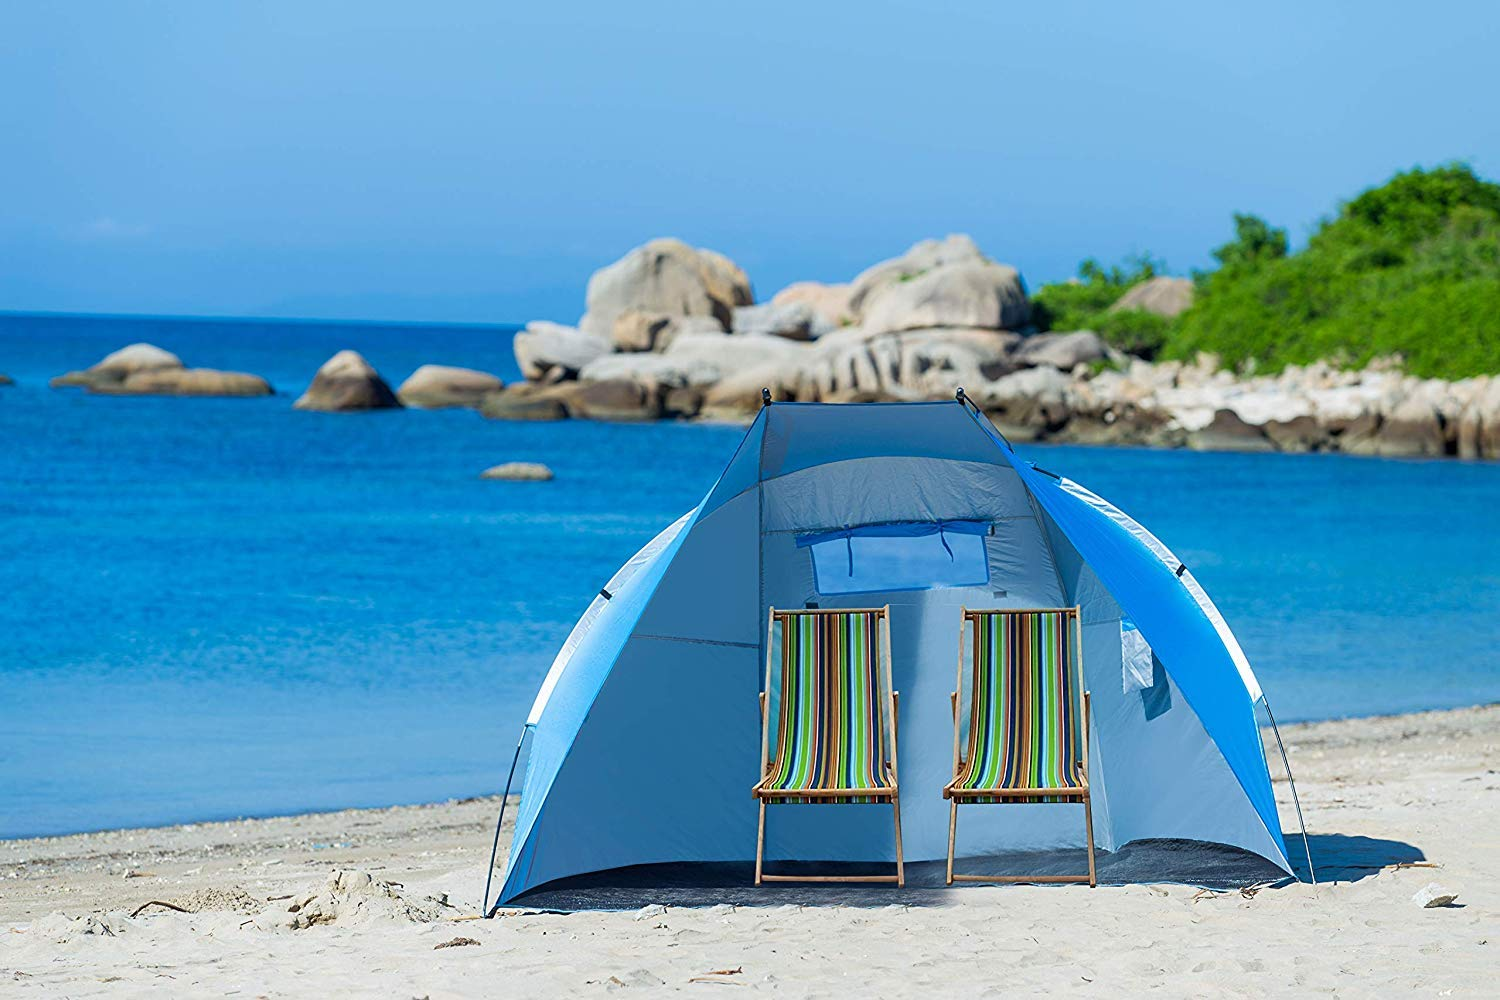 Extra Large Beach Cabana Tent Sun Shelter Sunshade Outdoor Portable UPF 50+, 94.5'' L x 47.2'' W x 55'' H,Light Blue (Blue) by Suhleir